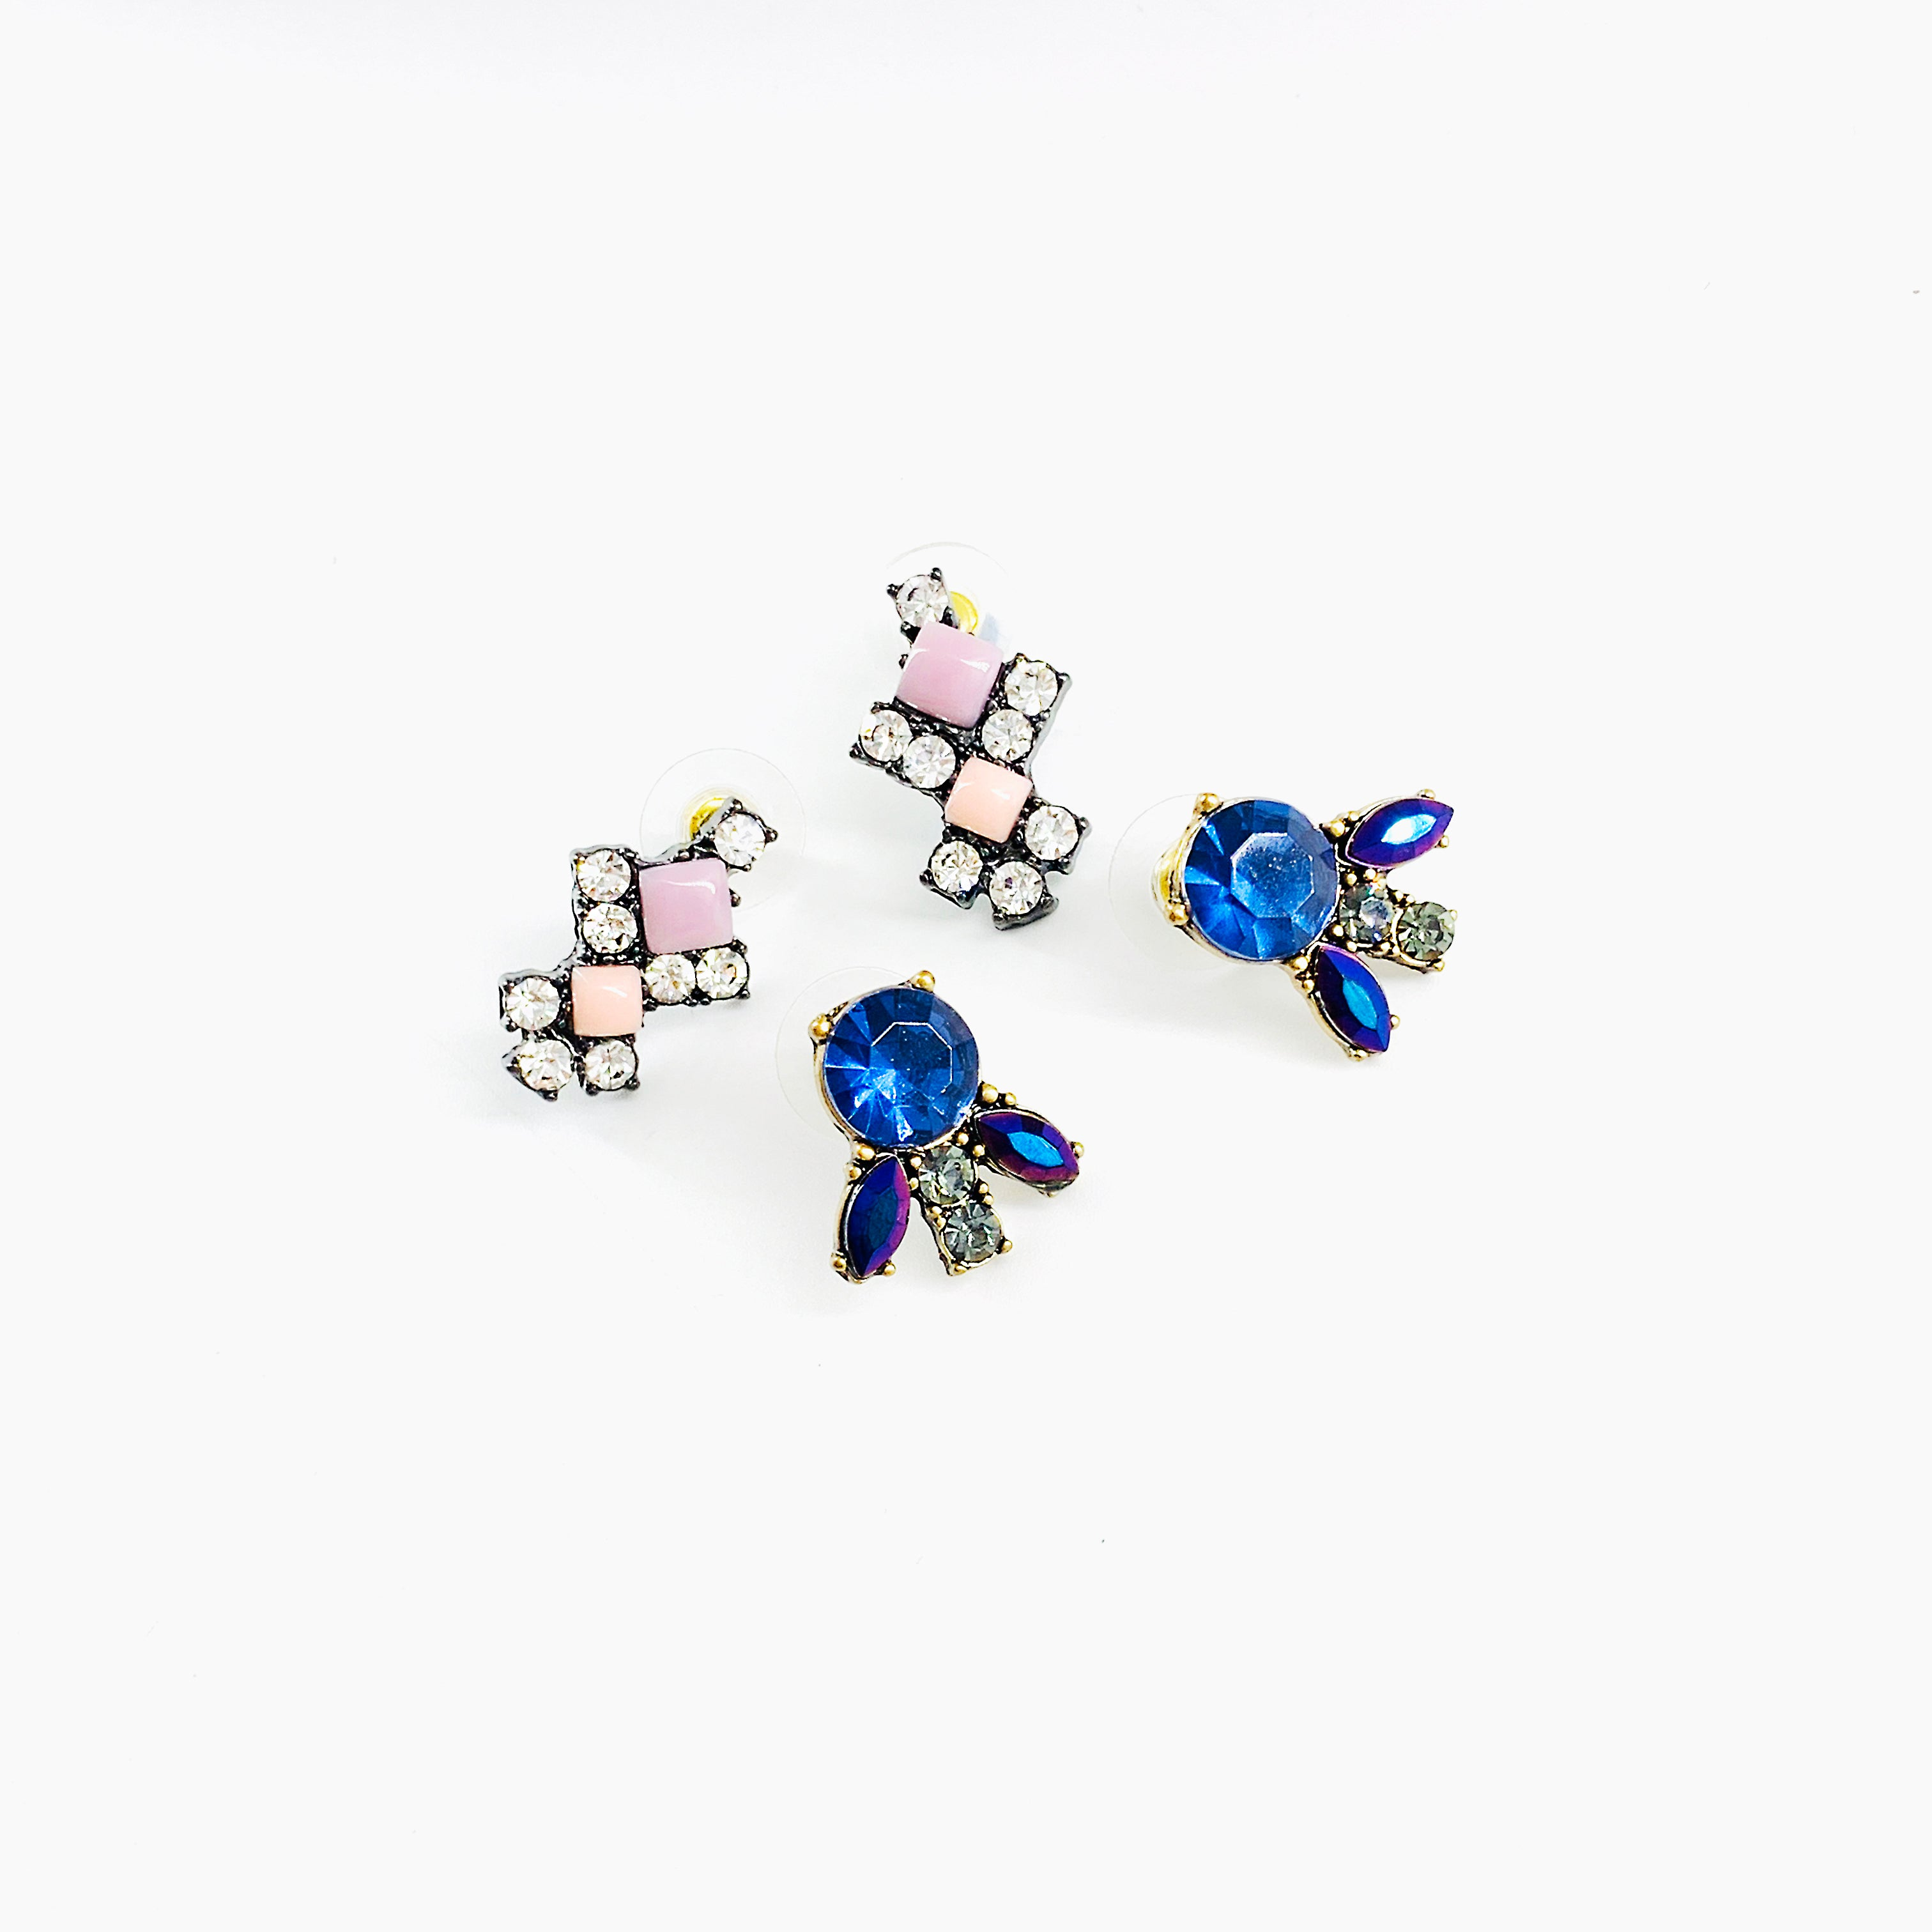 Double pair of earrings with pink and blue stones